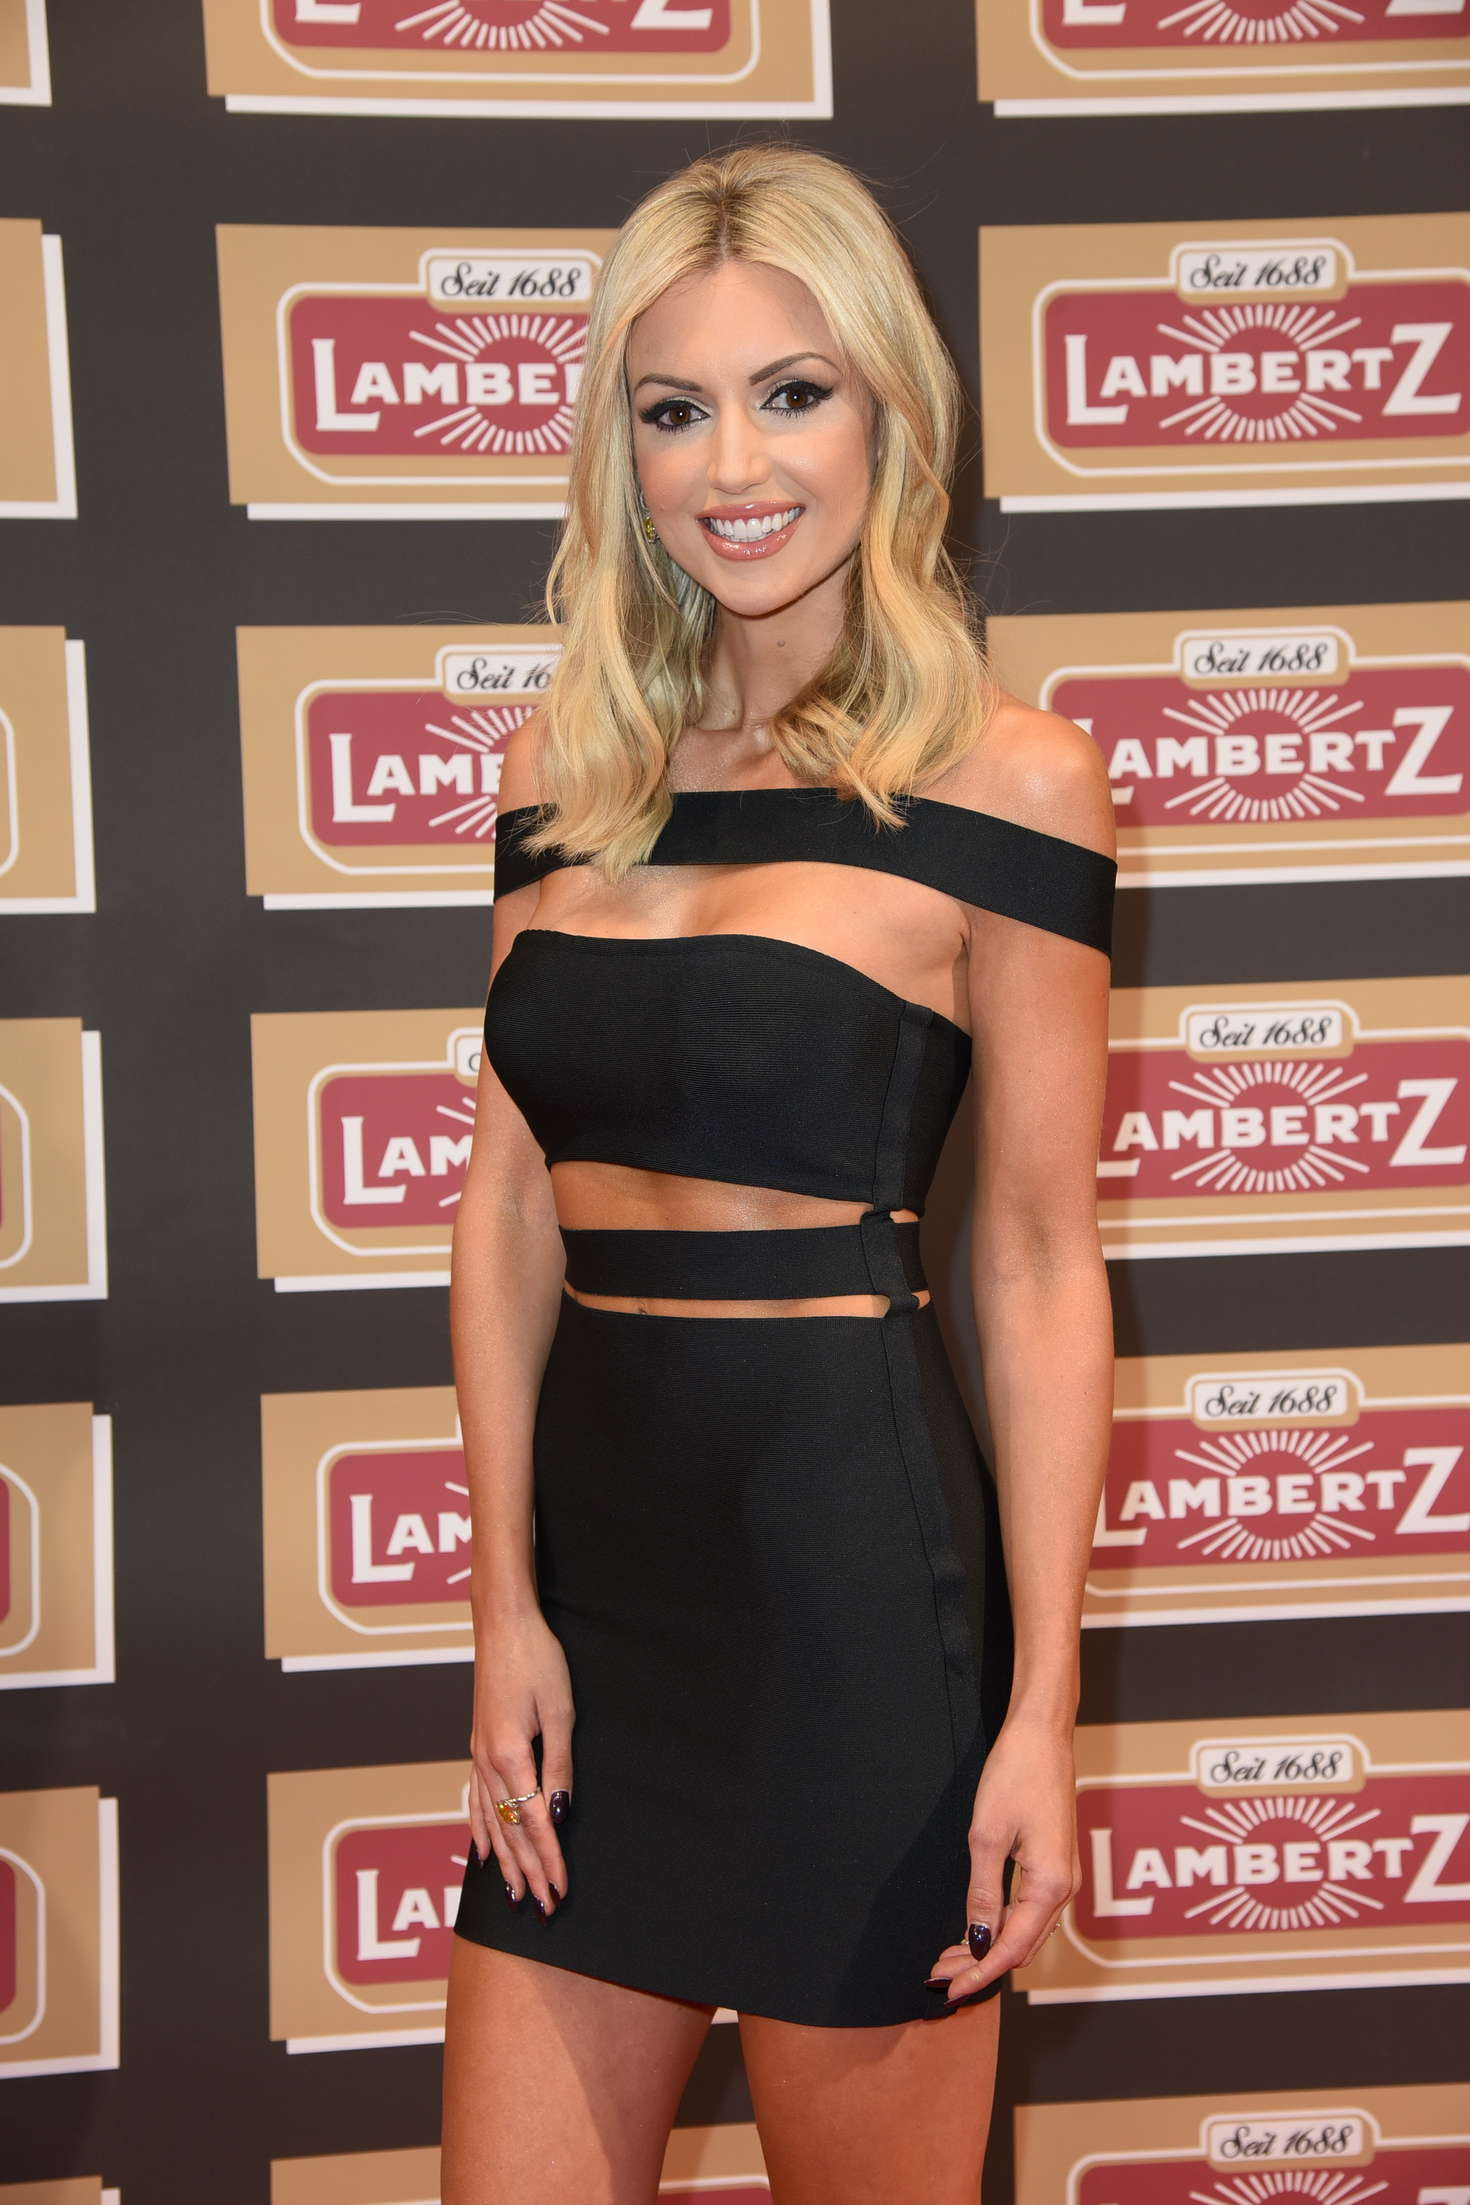 Rosanna-Davison--Lambertz-Monday-Night-2016--10